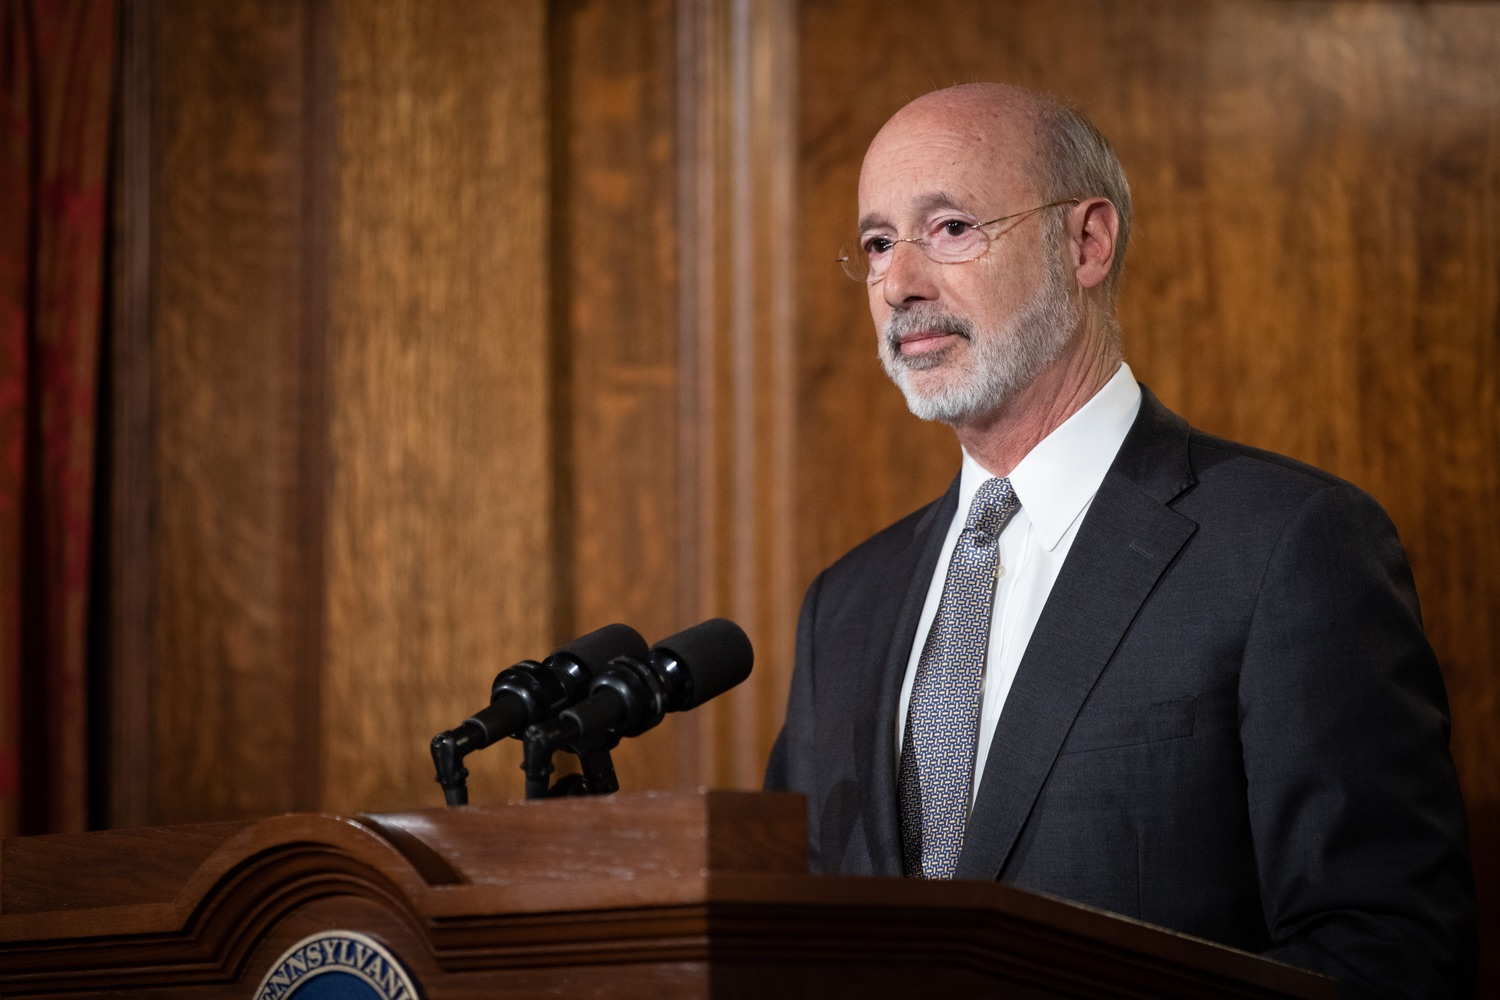 "<a href=""http://filesource.abacast.com/commonwealthofpa/photo/17554_gov_voter_reform_bill_dz_017.jpg"" target=""_blank"">⇣ Download Photo<br></a>Harrisburg, PA  Governor Tom Wolf speaks at the Election Reform Bill signing. Governor Wolf made voting more convenient and secure by signing Act 77 of 2019, the most significant improvement to Pennsylvanias elections in more than 80 years. The bipartisan compromise legislation takes effect for the April 2020 primary election and makes Pennsylvania a national leader with voter-friendly election reforms."